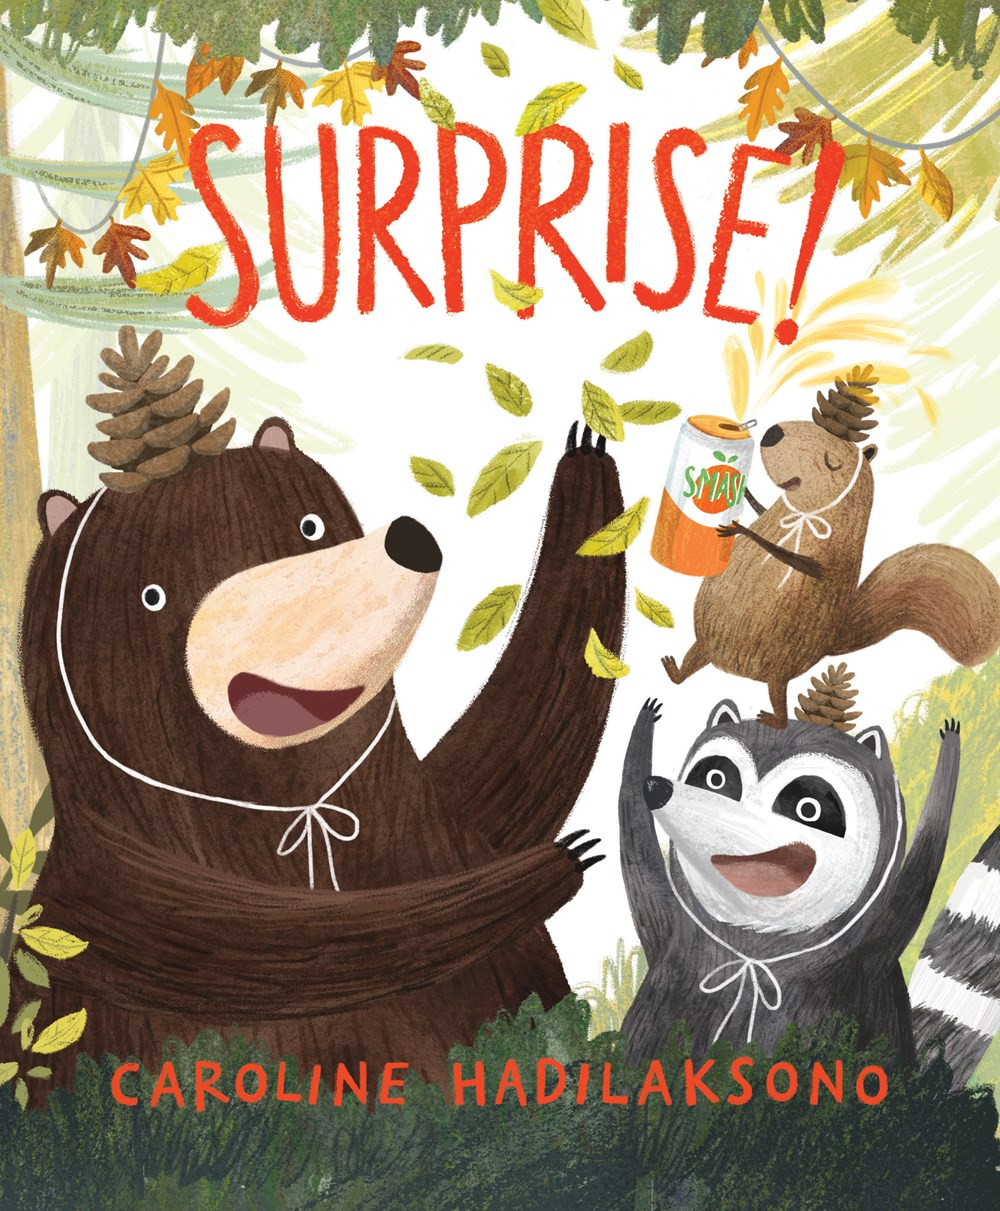 Sunday Story Time with Caroline Hadilaksono (Author & Illustrator of Surprise!)